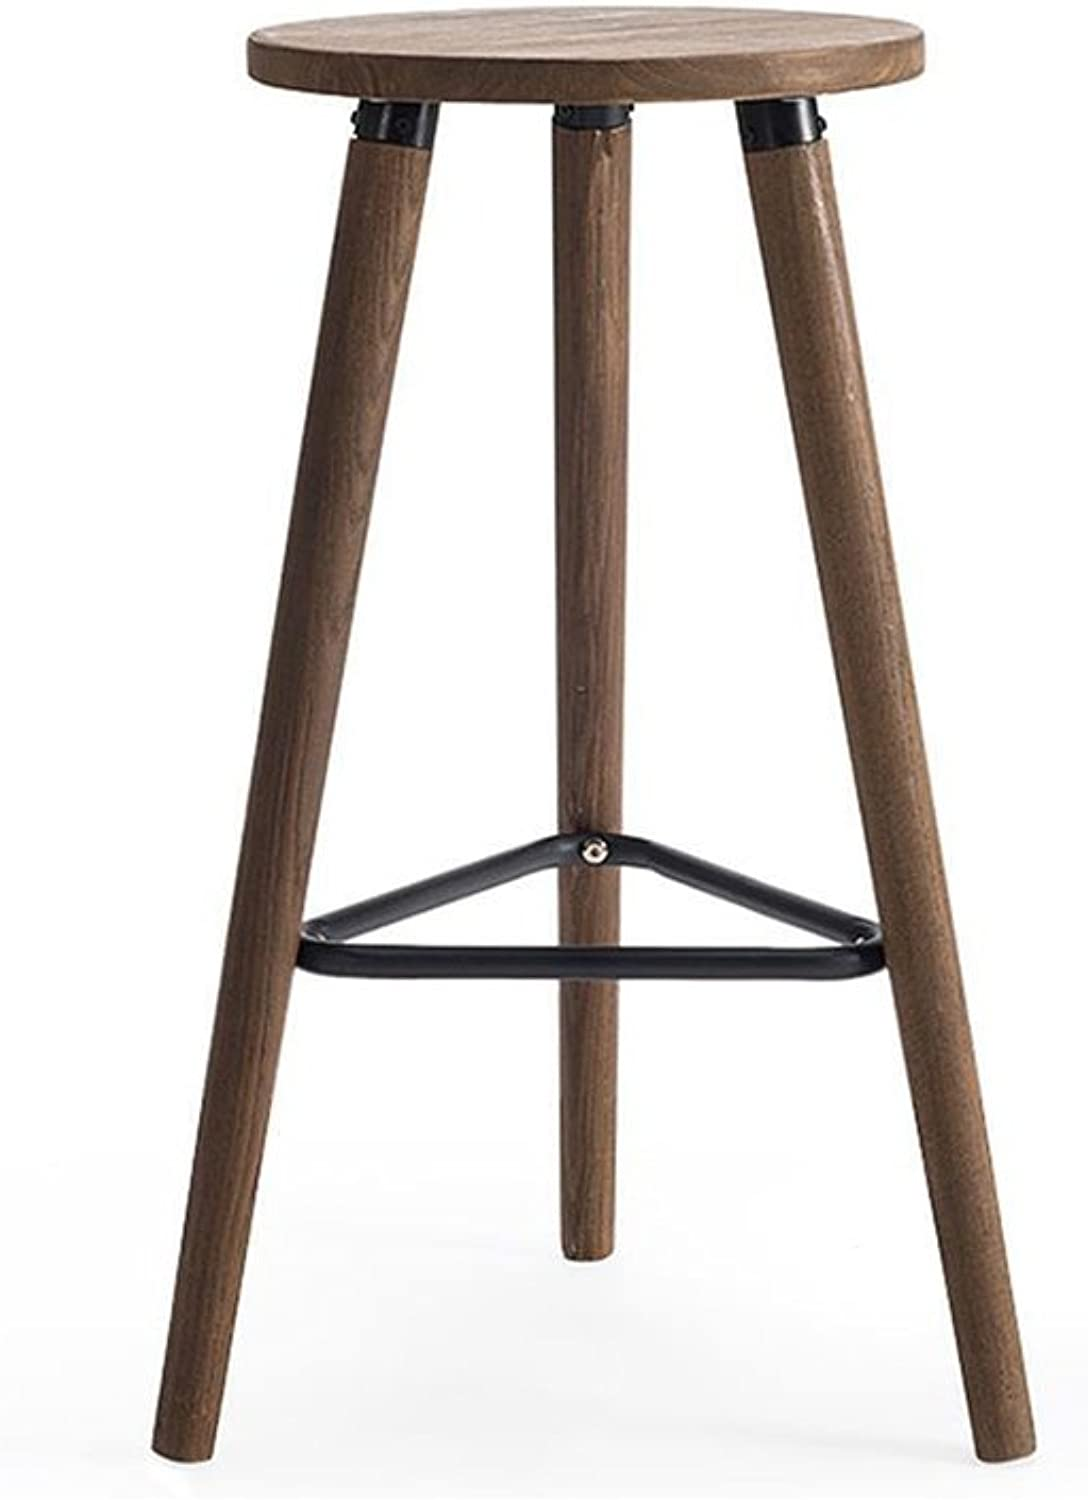 Solid Wood Bar Chair Stool High Stool Simple Style Chair Height 66.5Cm